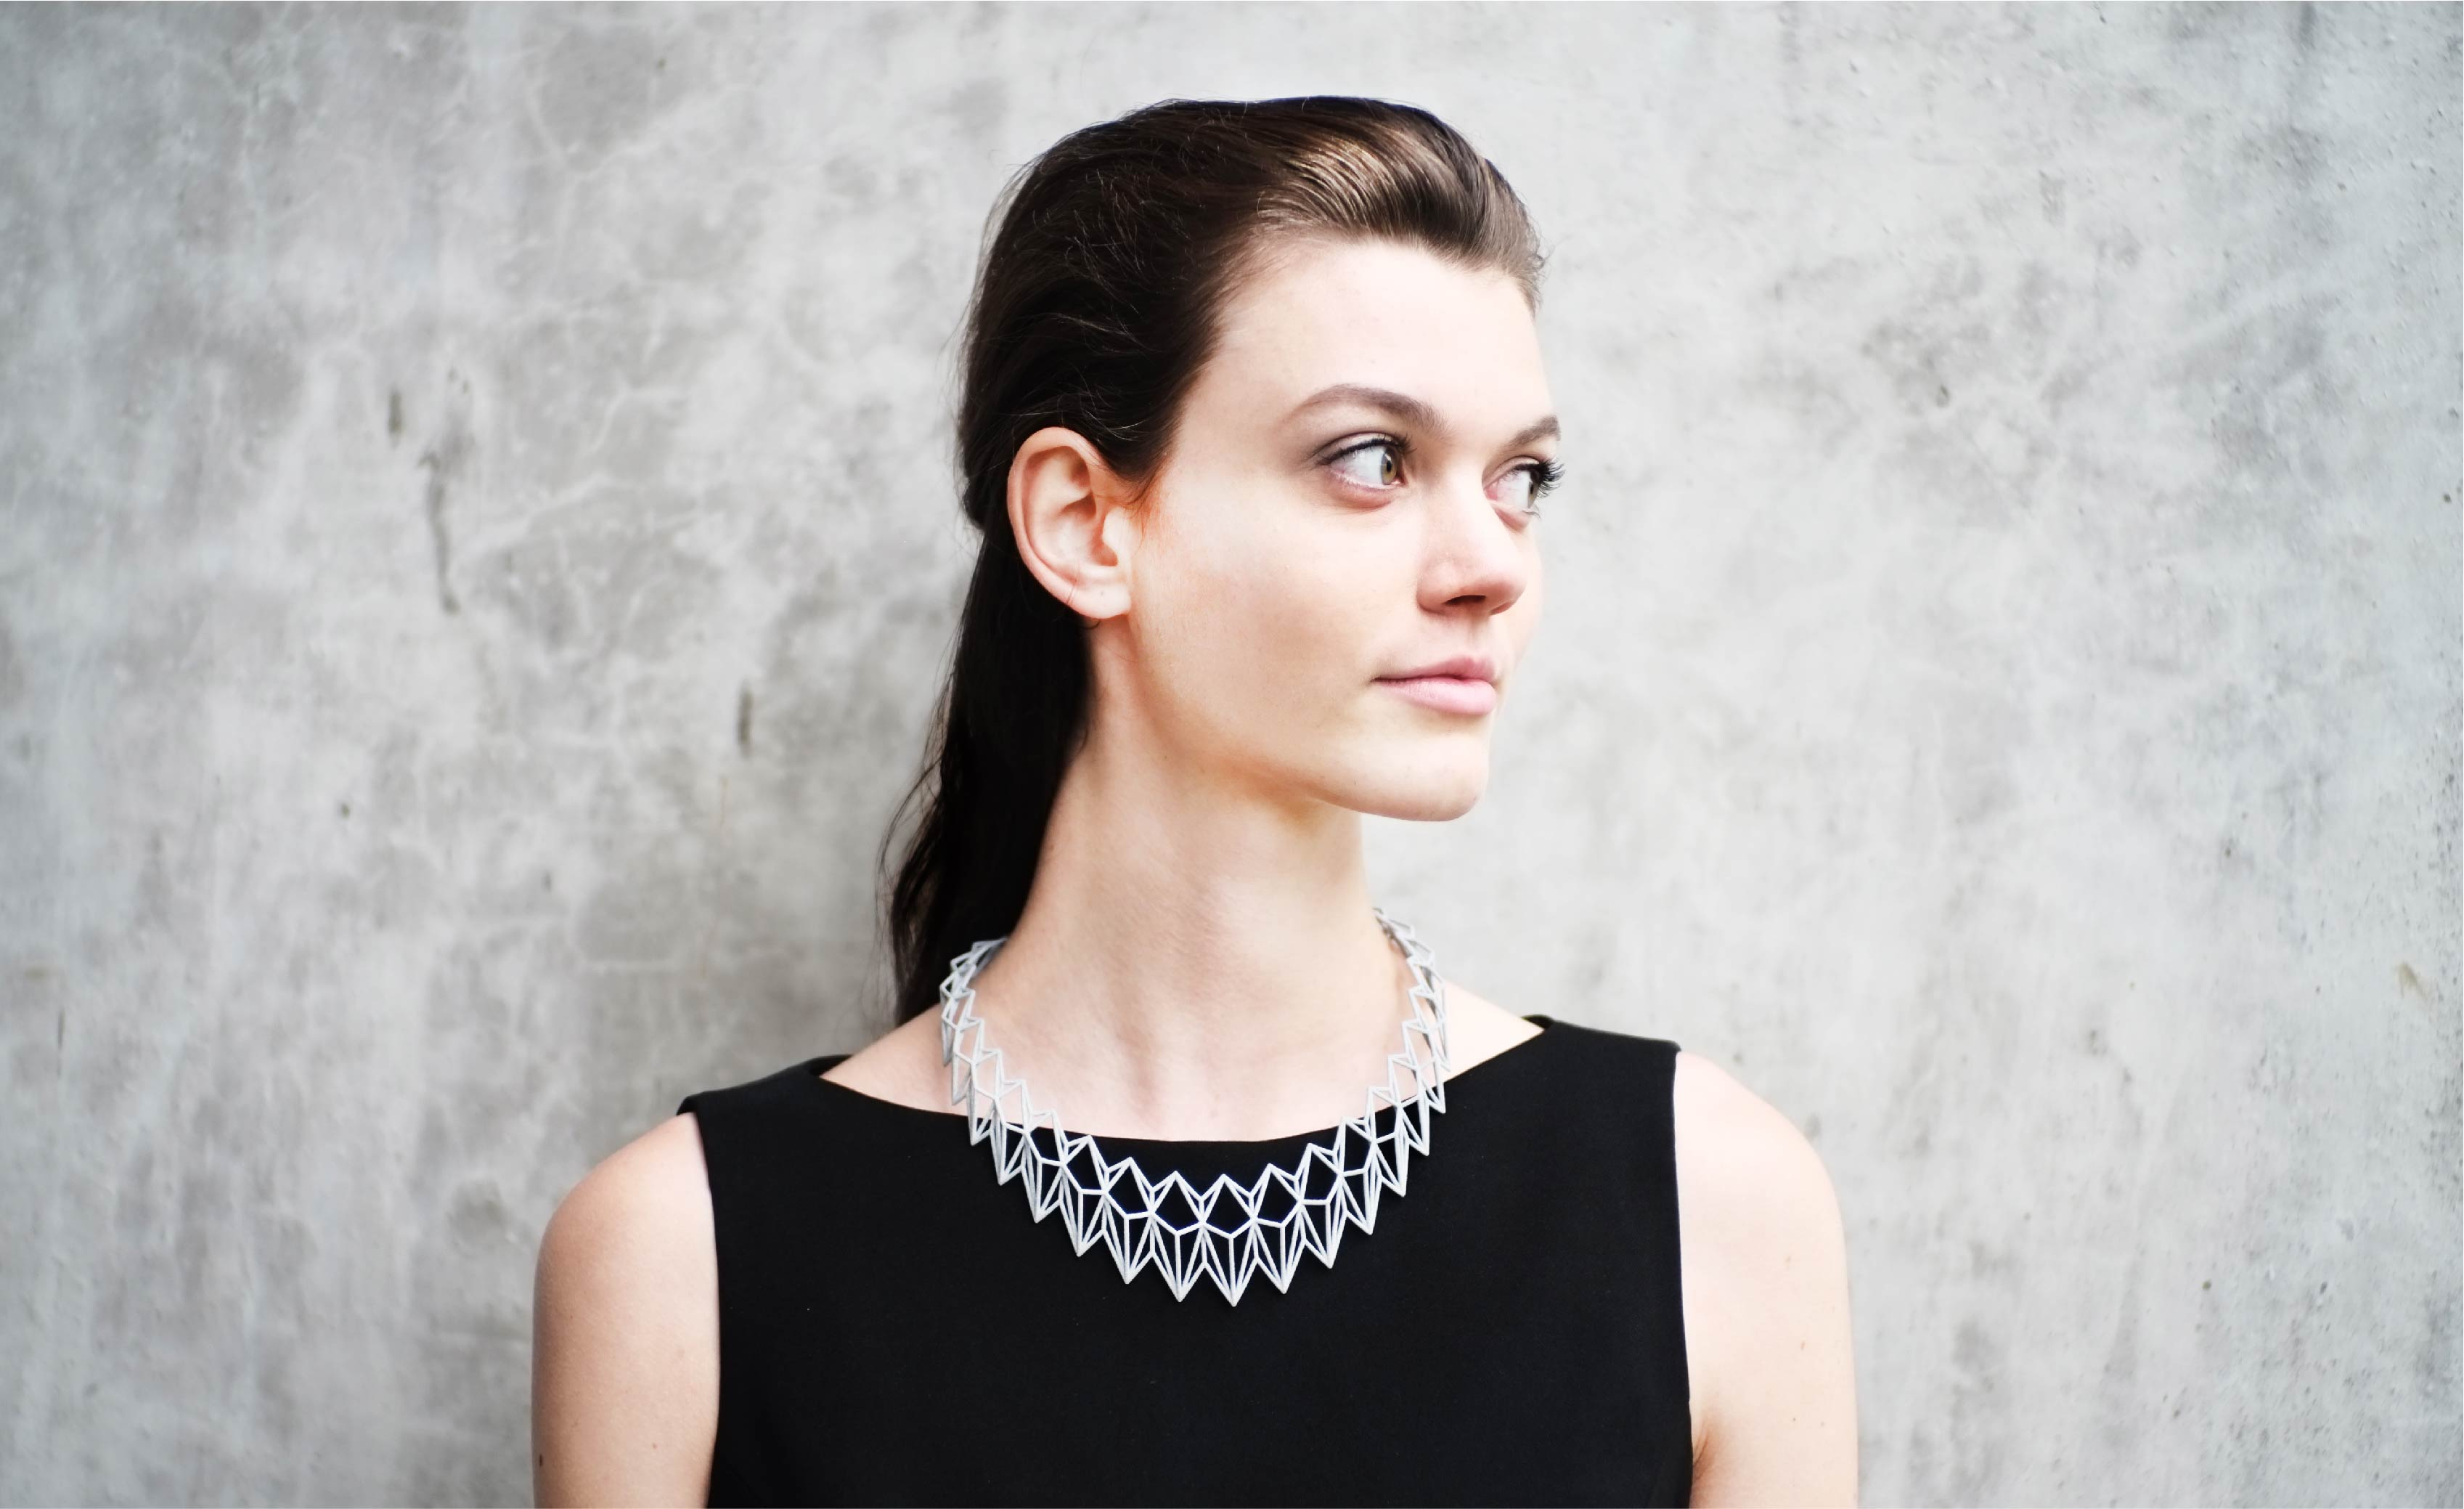 Rhombus 3D printed necklace